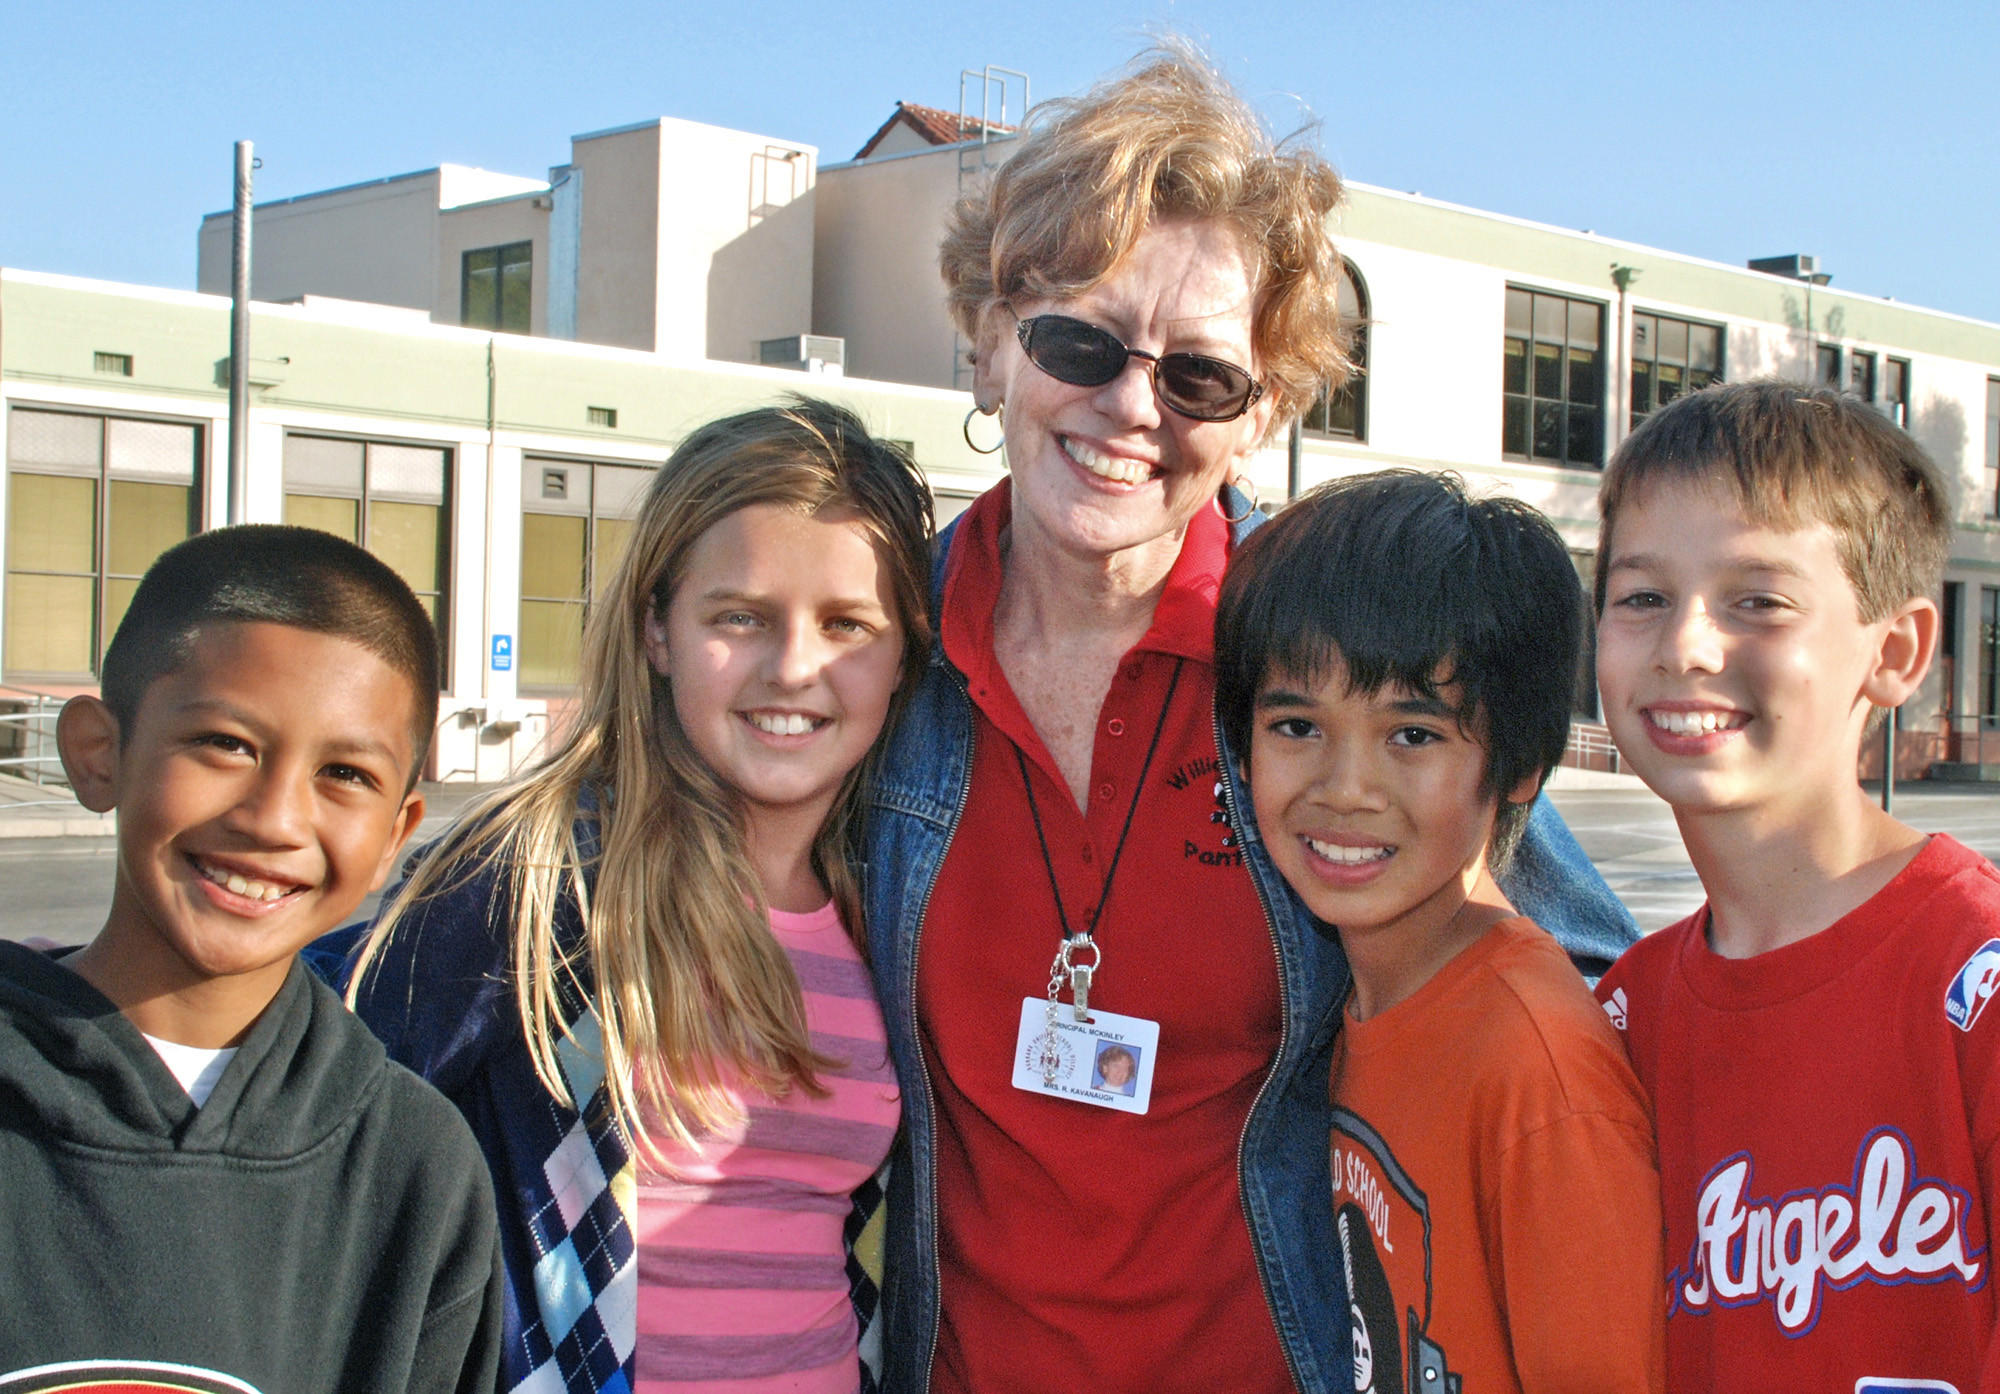 McKinley Elementary principal Principal Bobbie Kavanaugh will retire after 38 years as an educator at the end of the school year. She is pictured with McKinley Elementary students from left, Jared Pasion, Ashley Samuel, Leander Benedicto and Justice Howe.